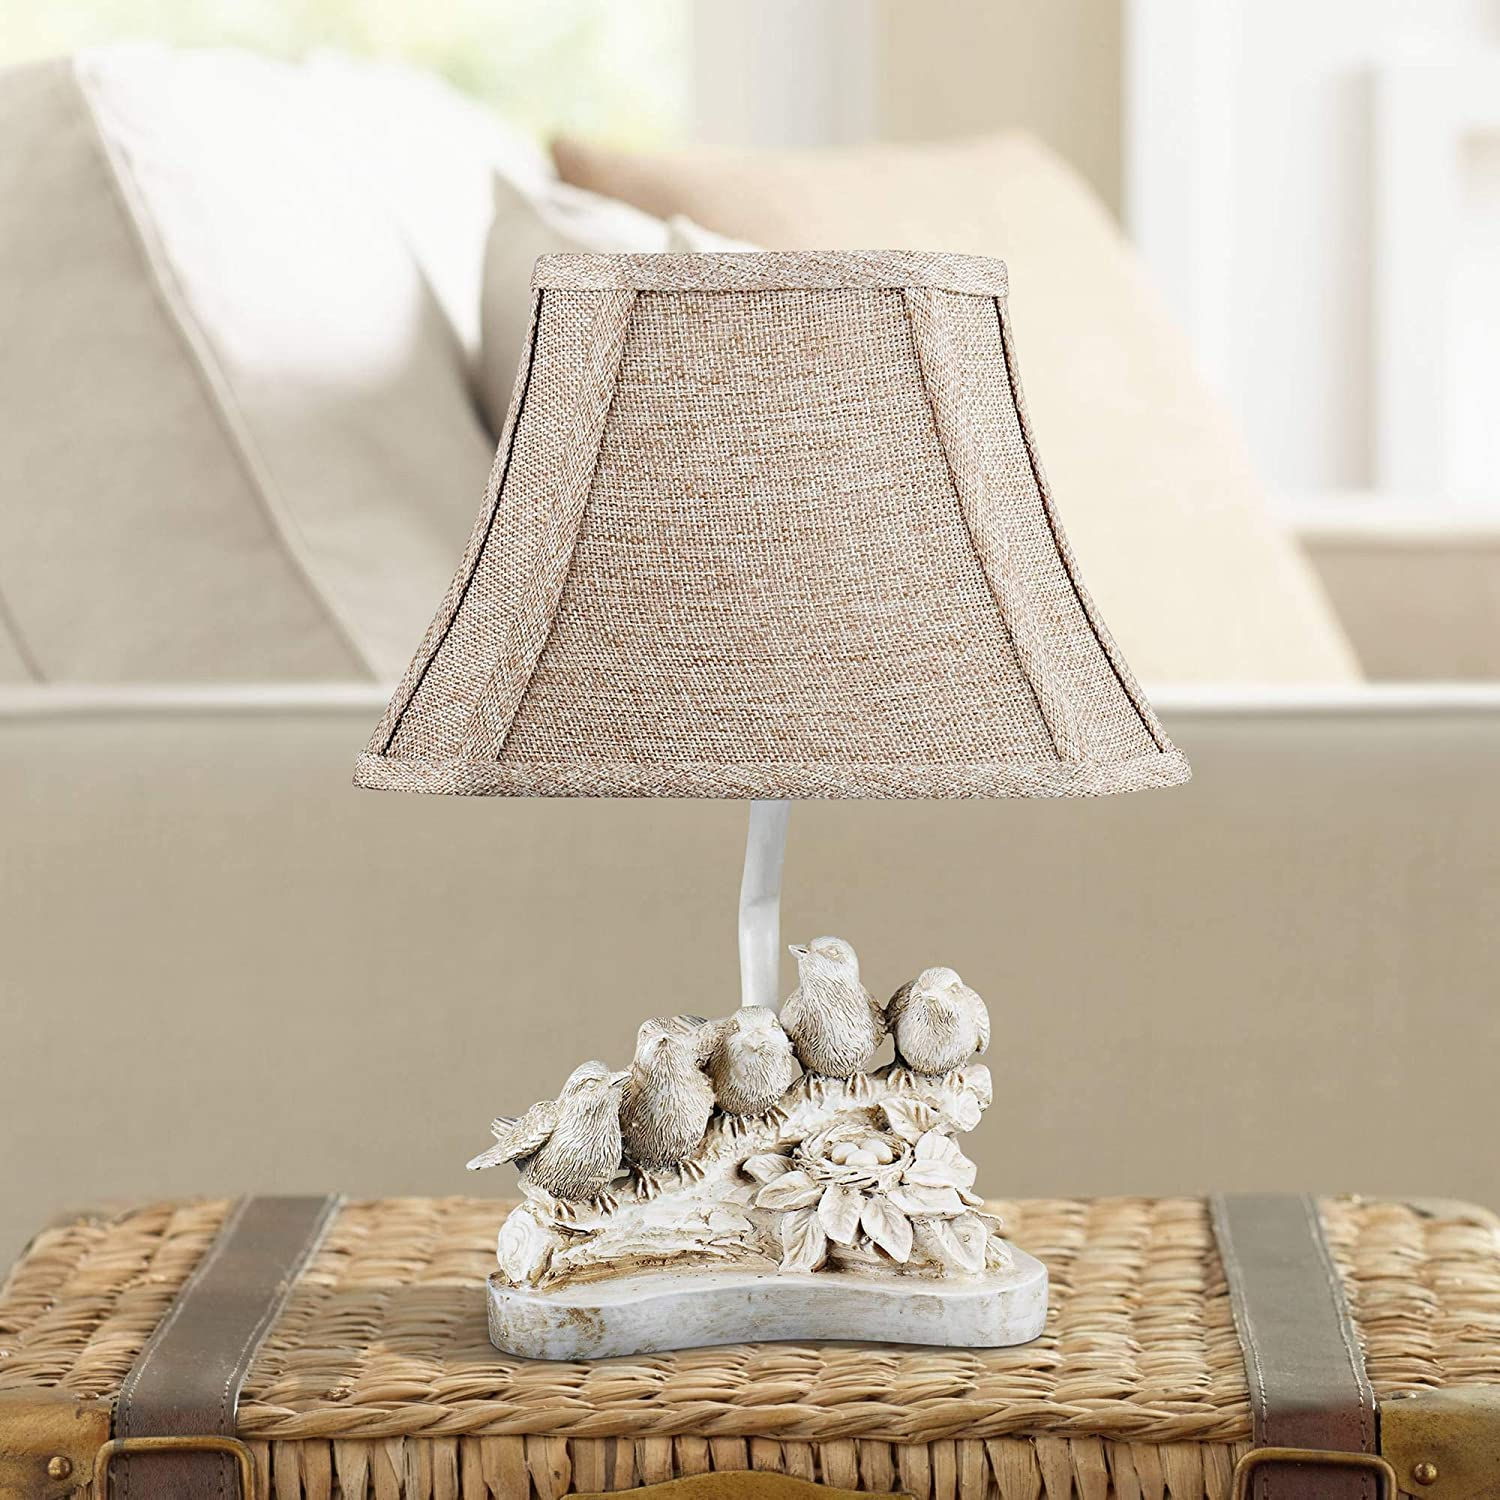 Rubbed White Birds in a Row Small Sculpture Side Lamp with Hessian ShadeSmall Moss Green Wood Casual Accent Table Lamp